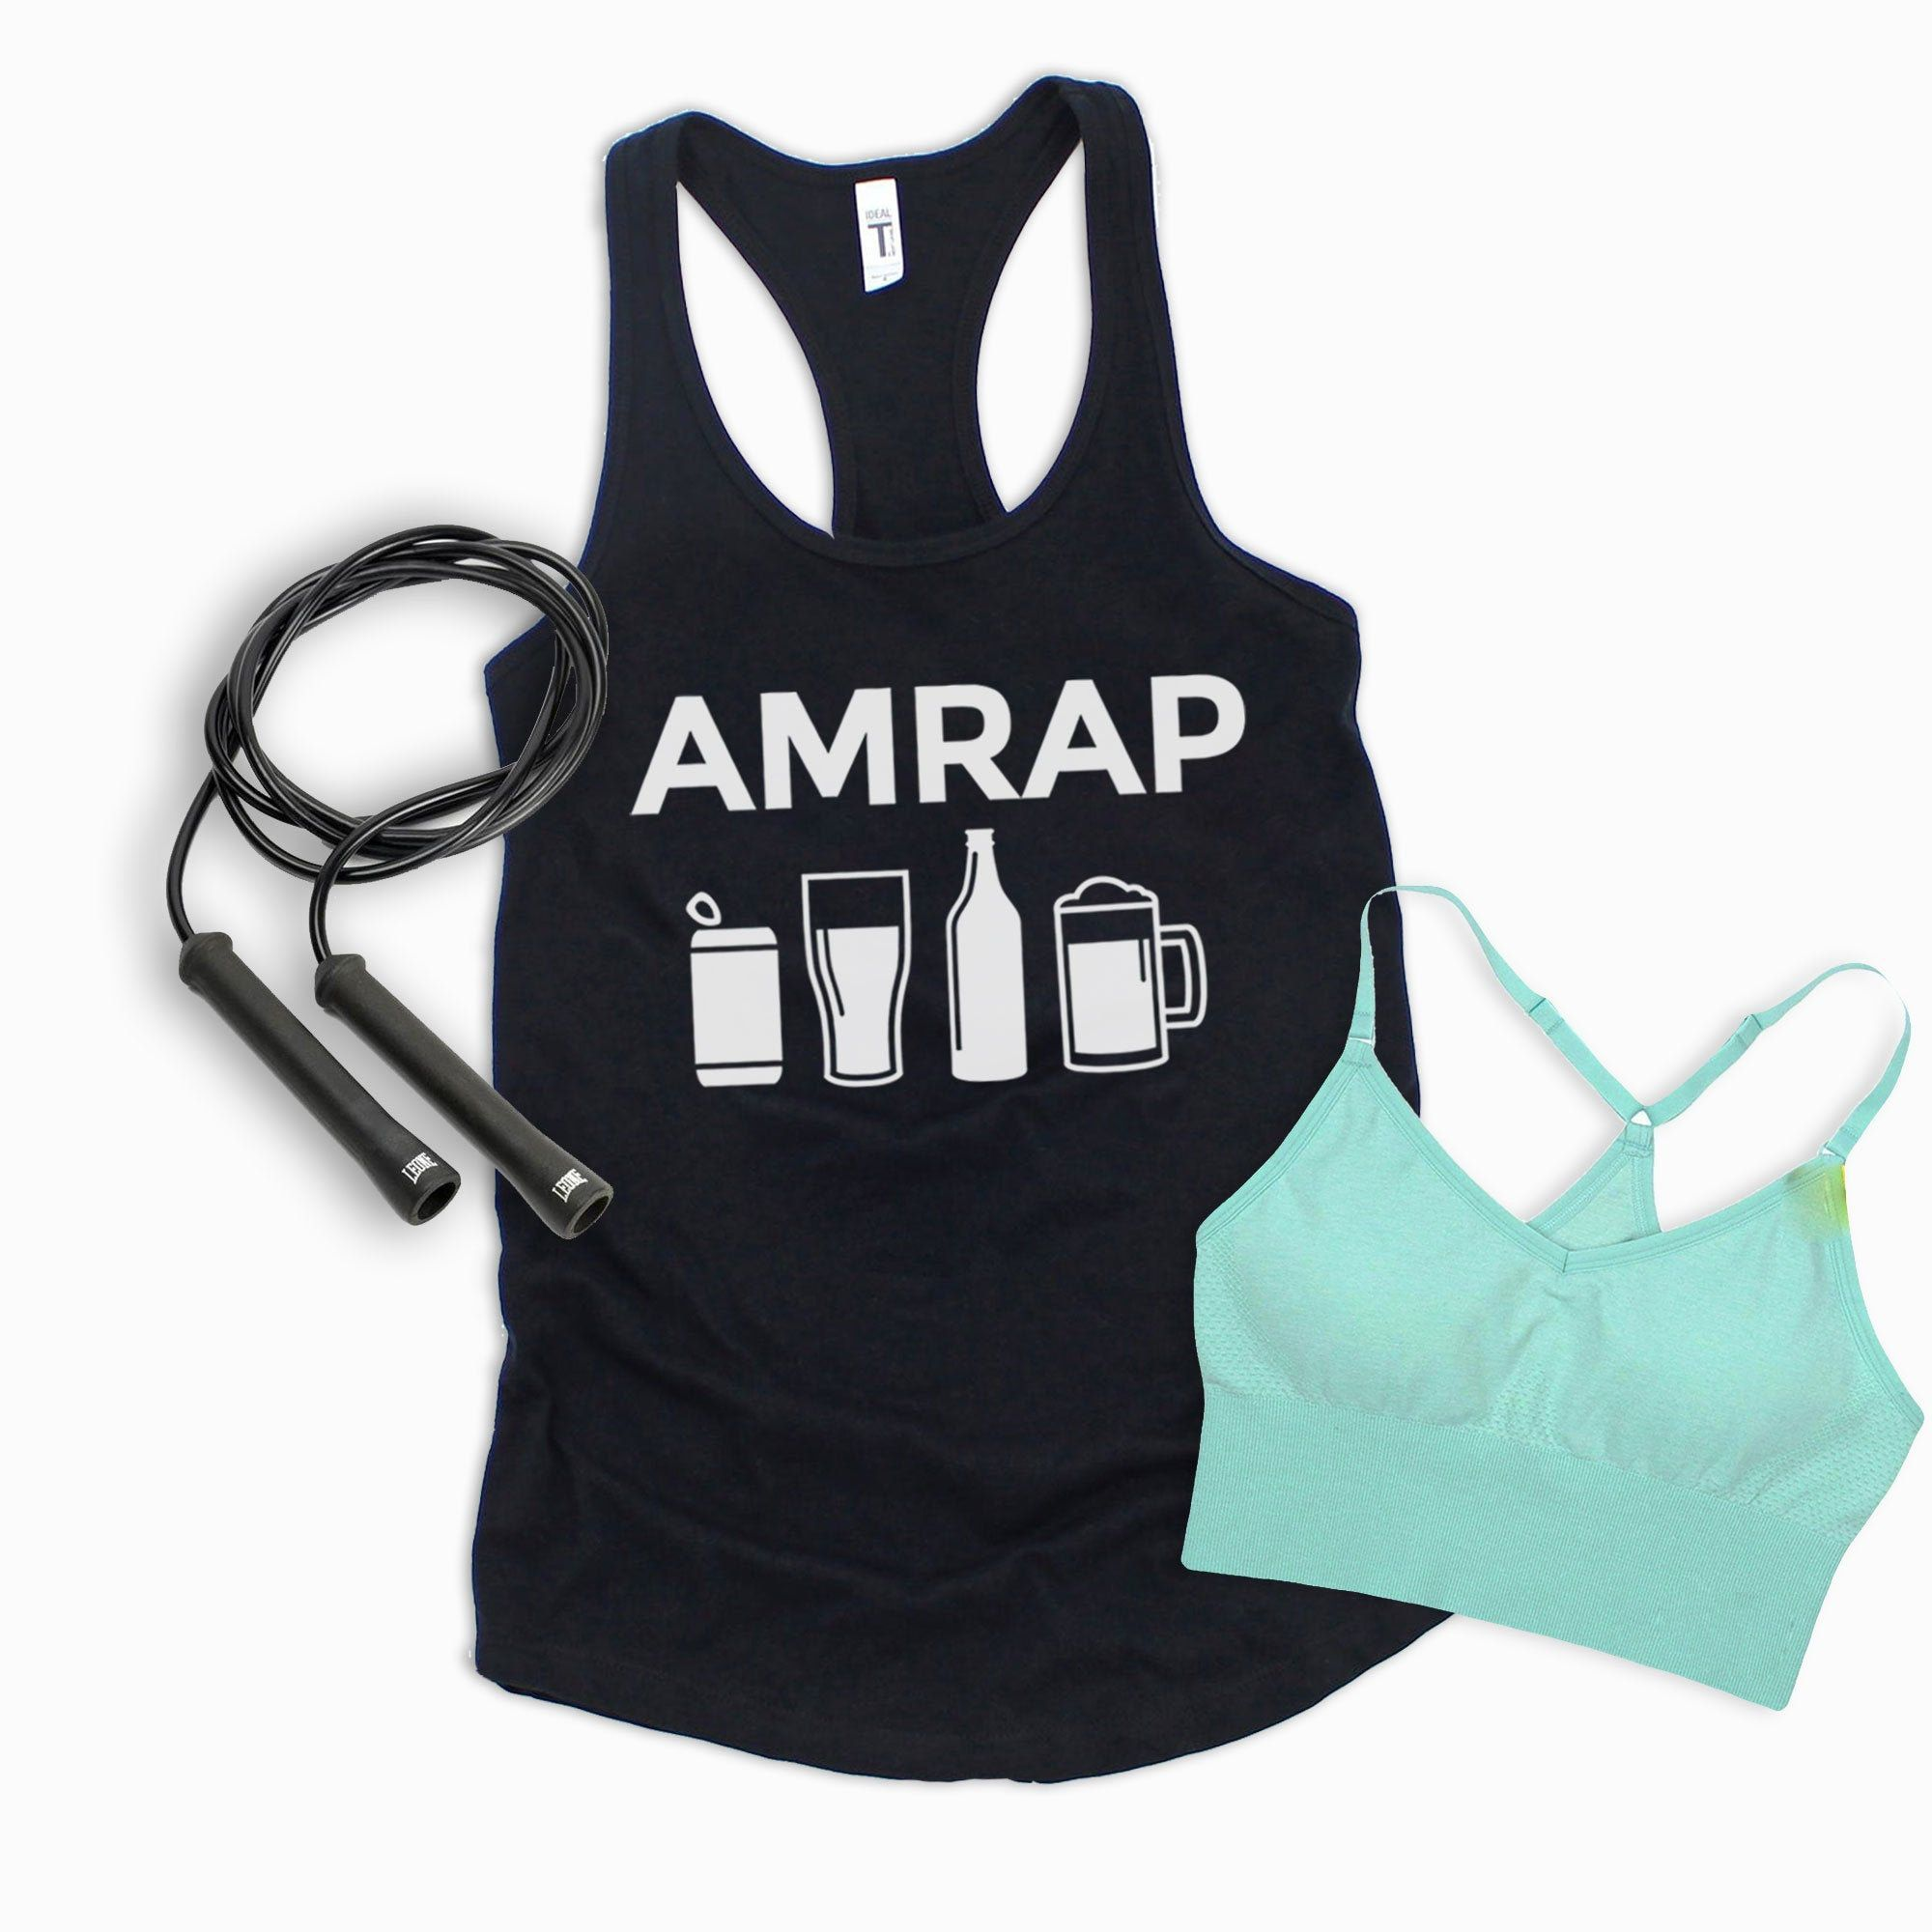 AMRAP Beer funny gym shirt Crossfit shirt workout tank for women funny beer shirt